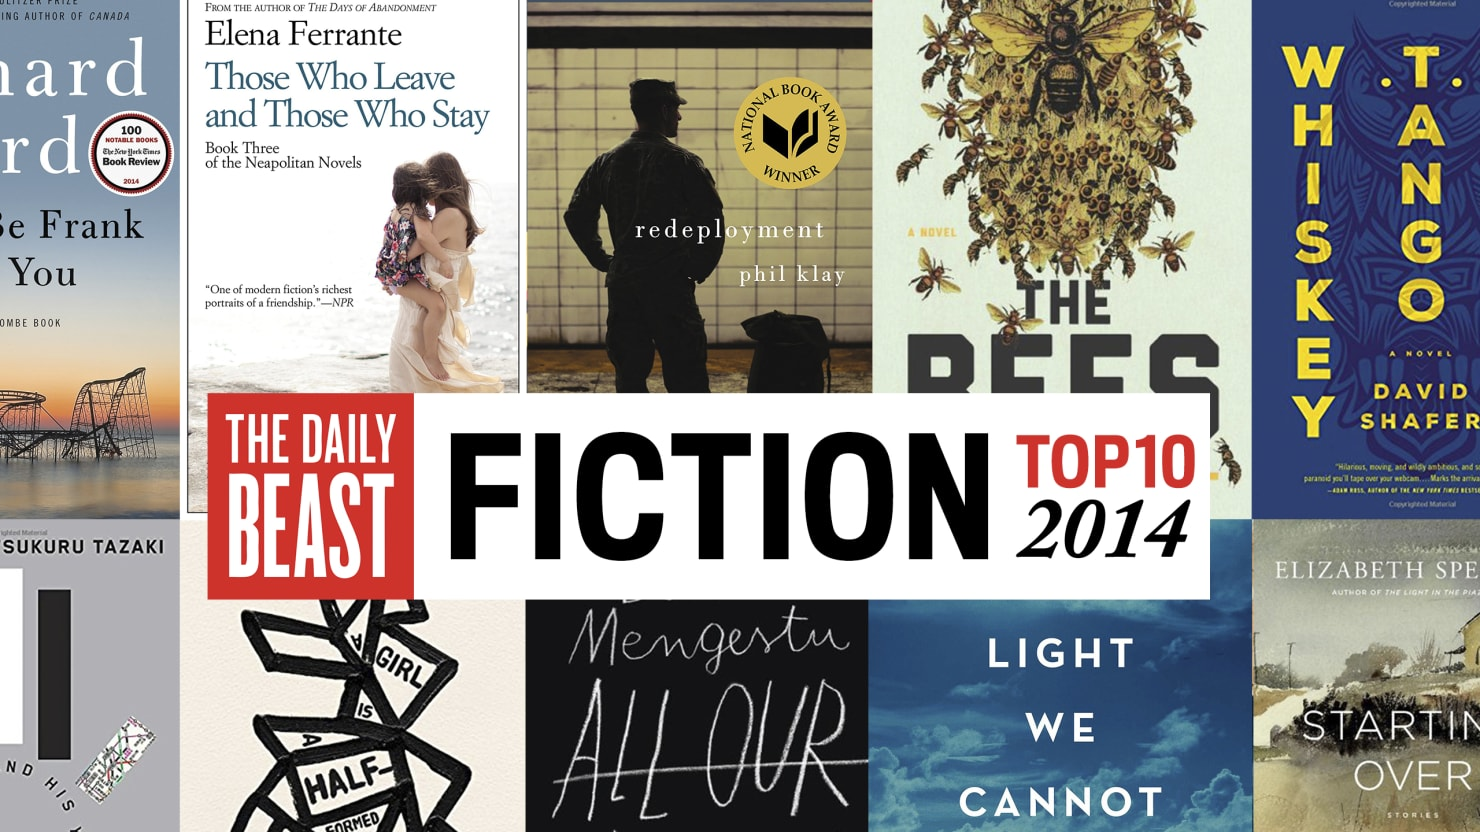 The Best Fiction of 2014: Ford, Ferrante, Klay, and More